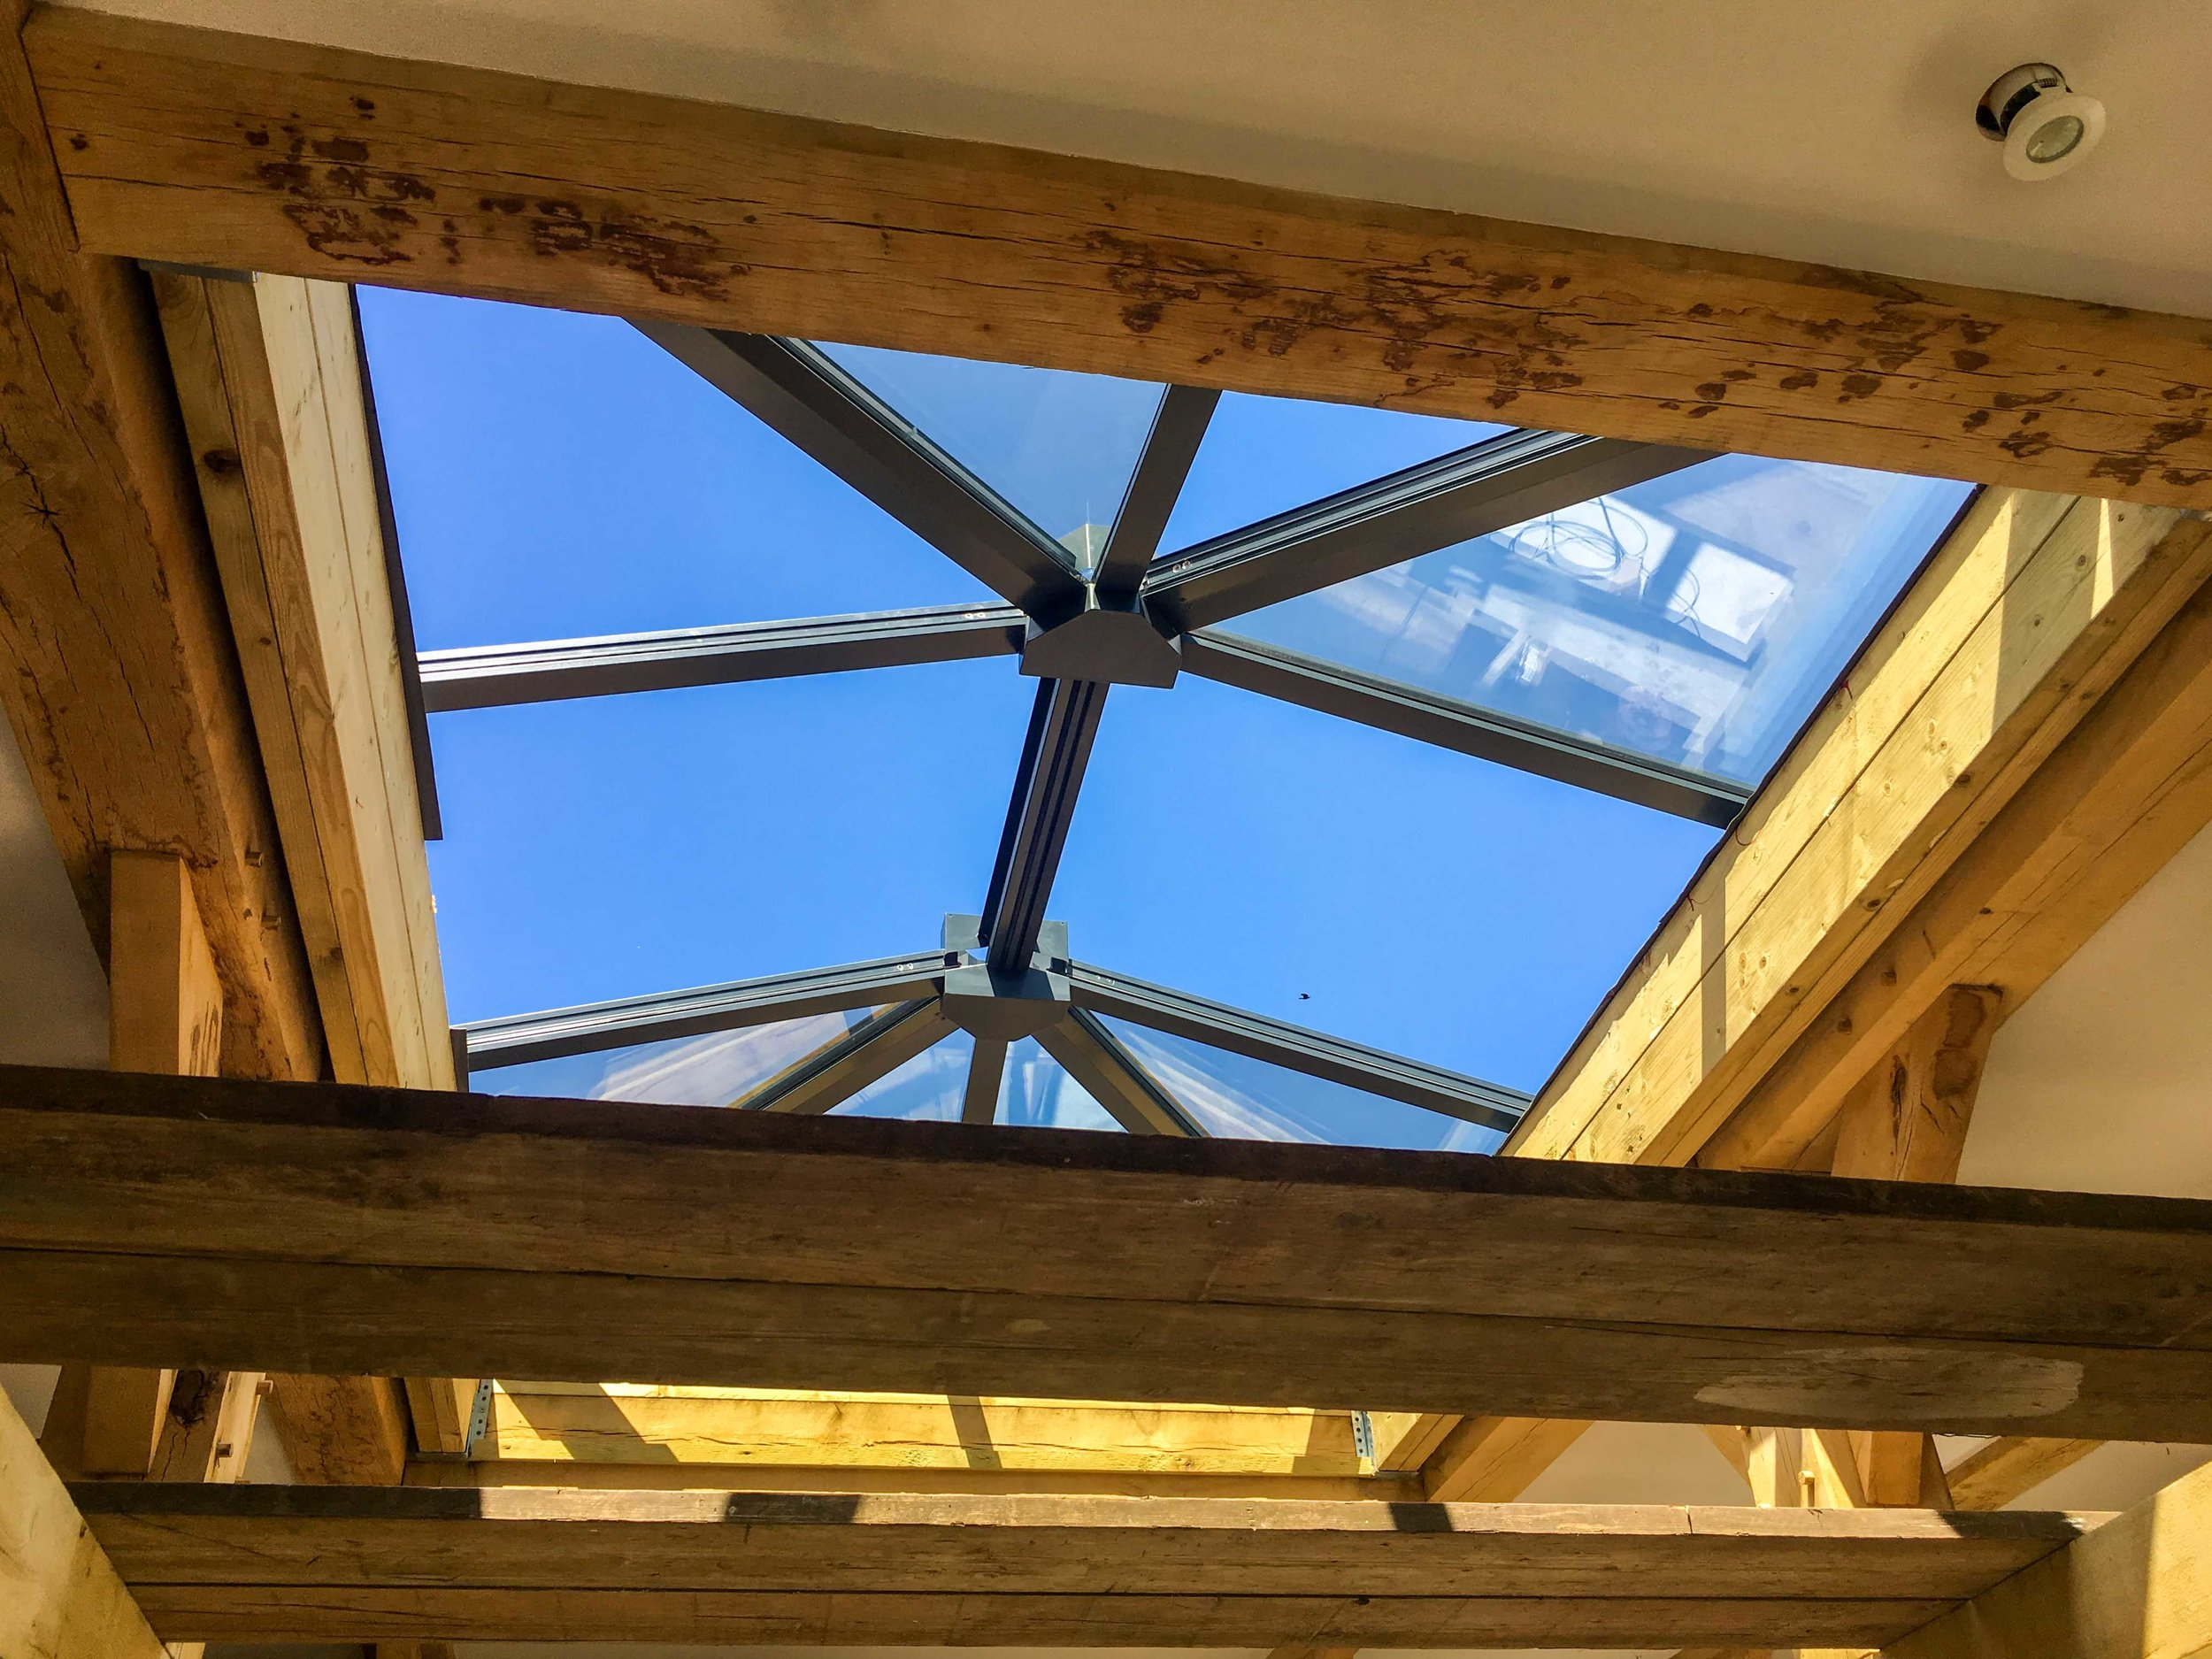 Prices Farm-Rooflight-1.jpg